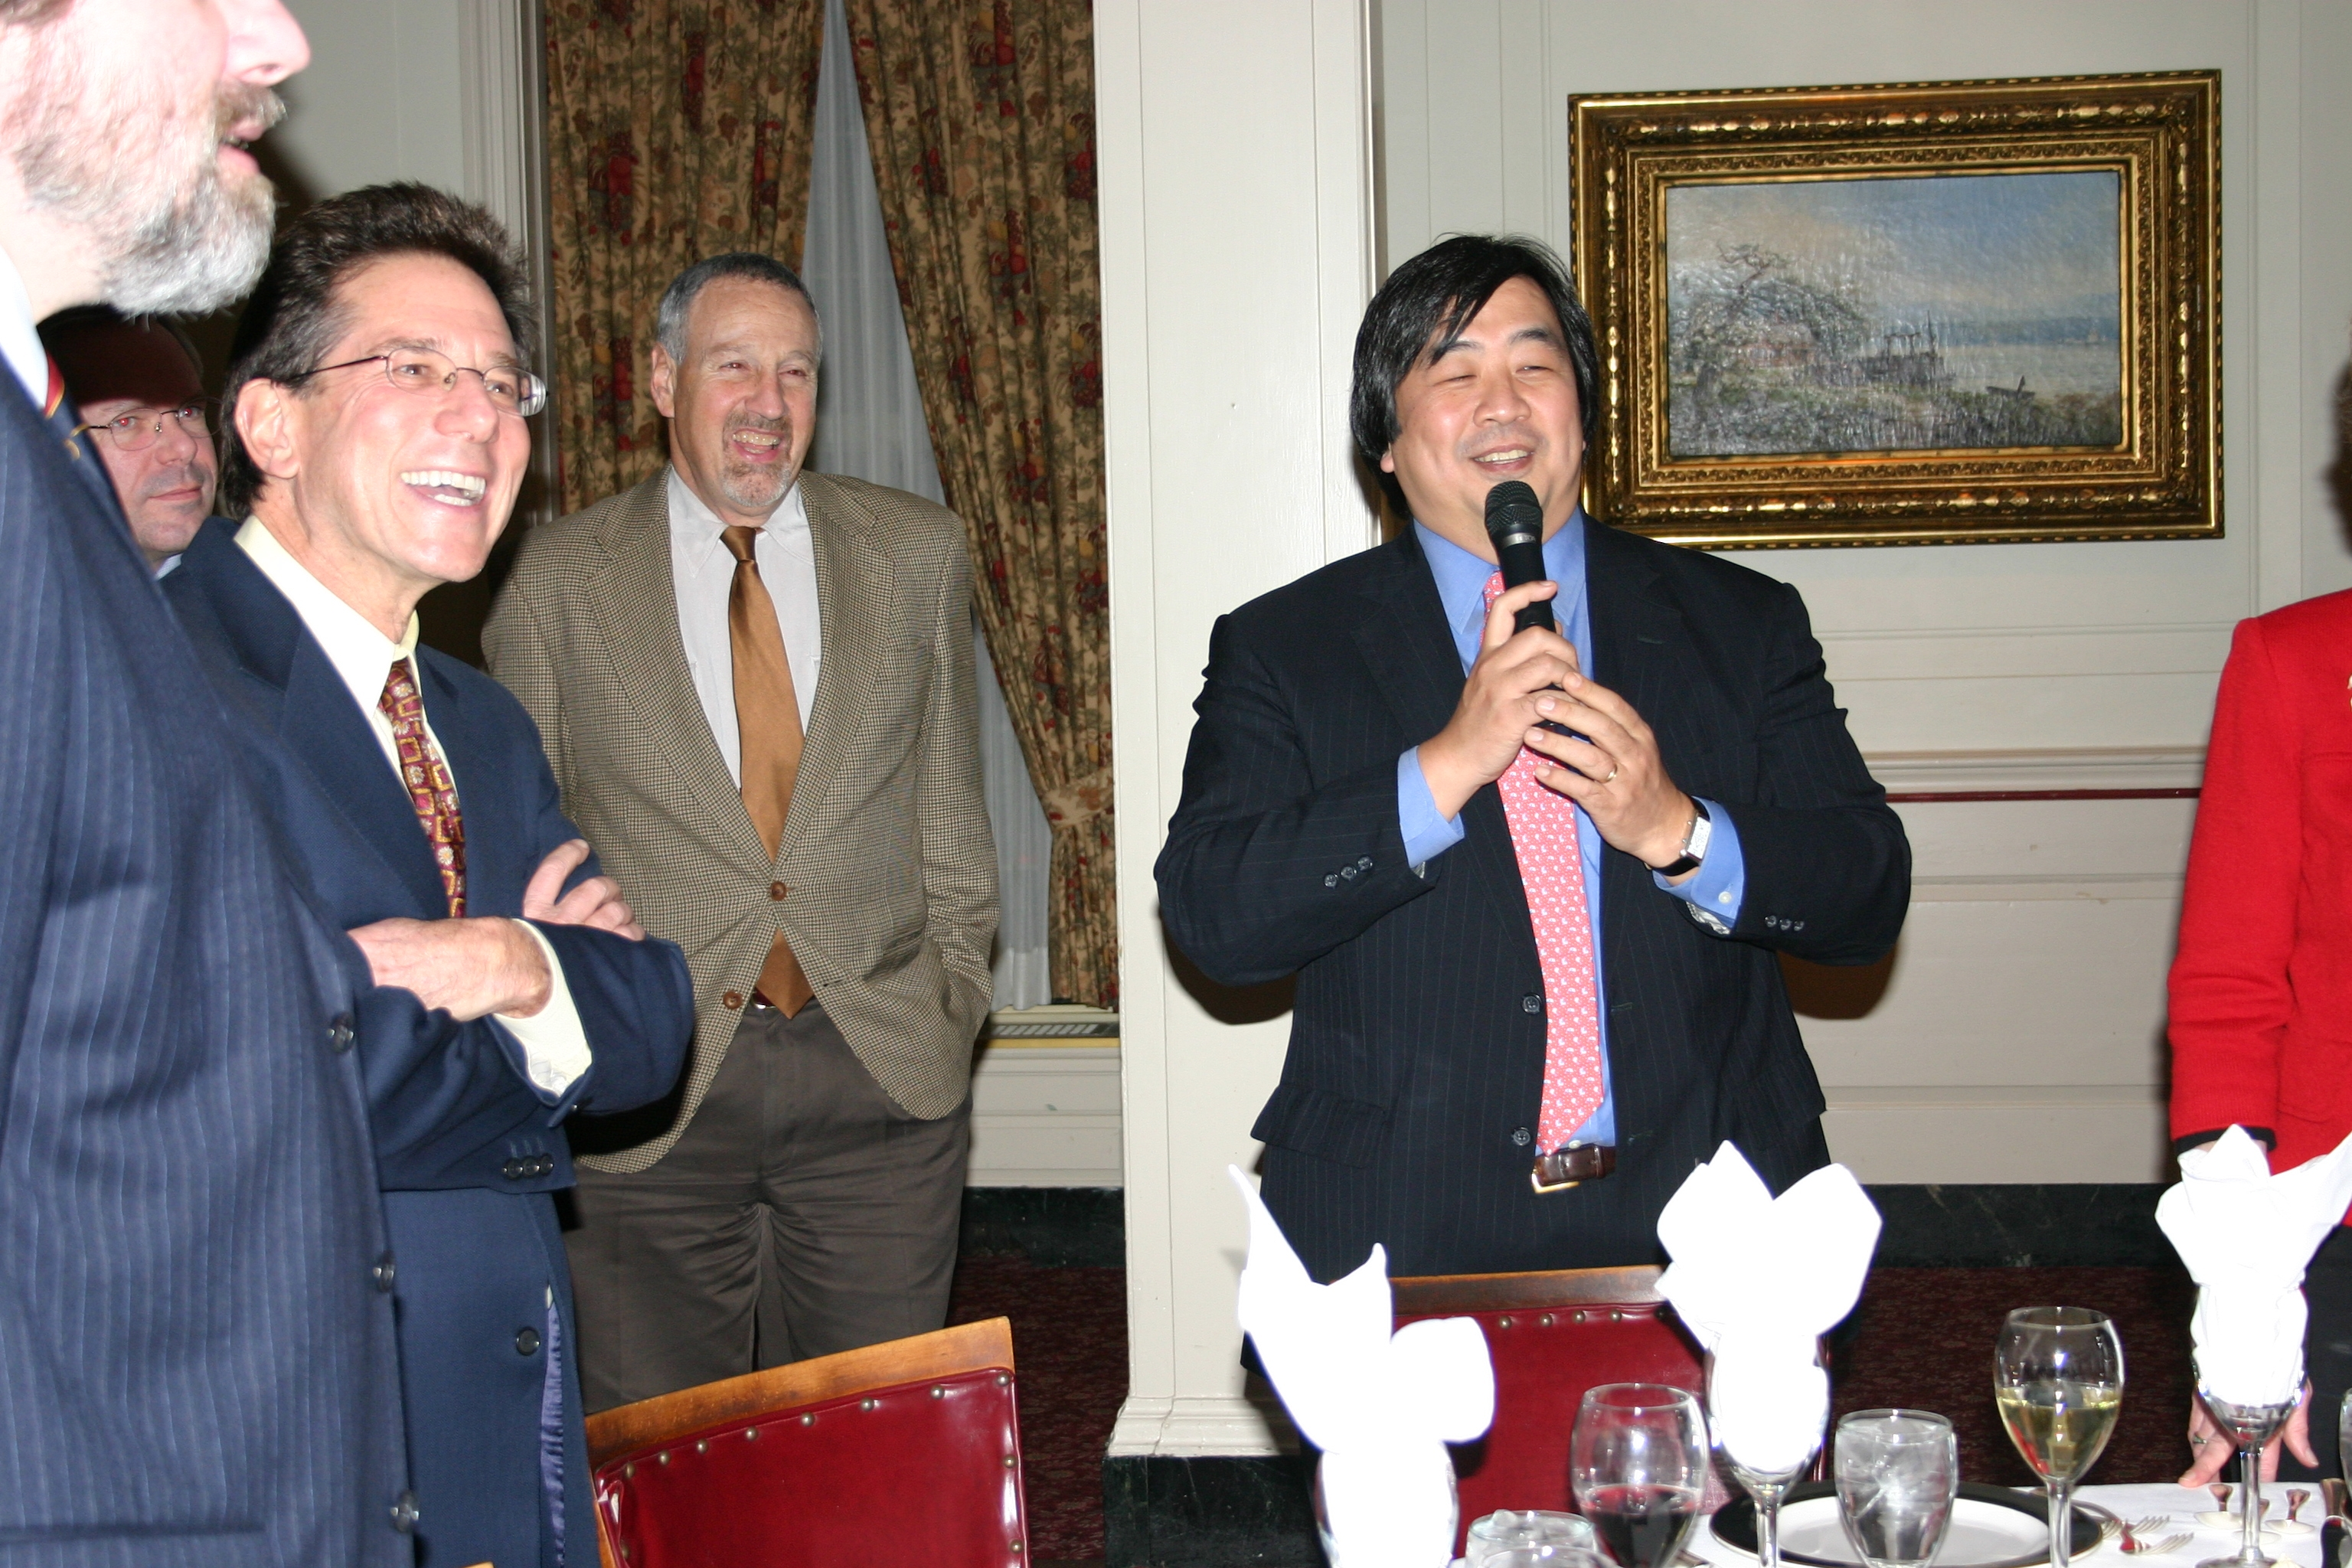 YLS Profs. Anthony Kronman '75 and Peter Schuck and YLS Dean Harold Koh